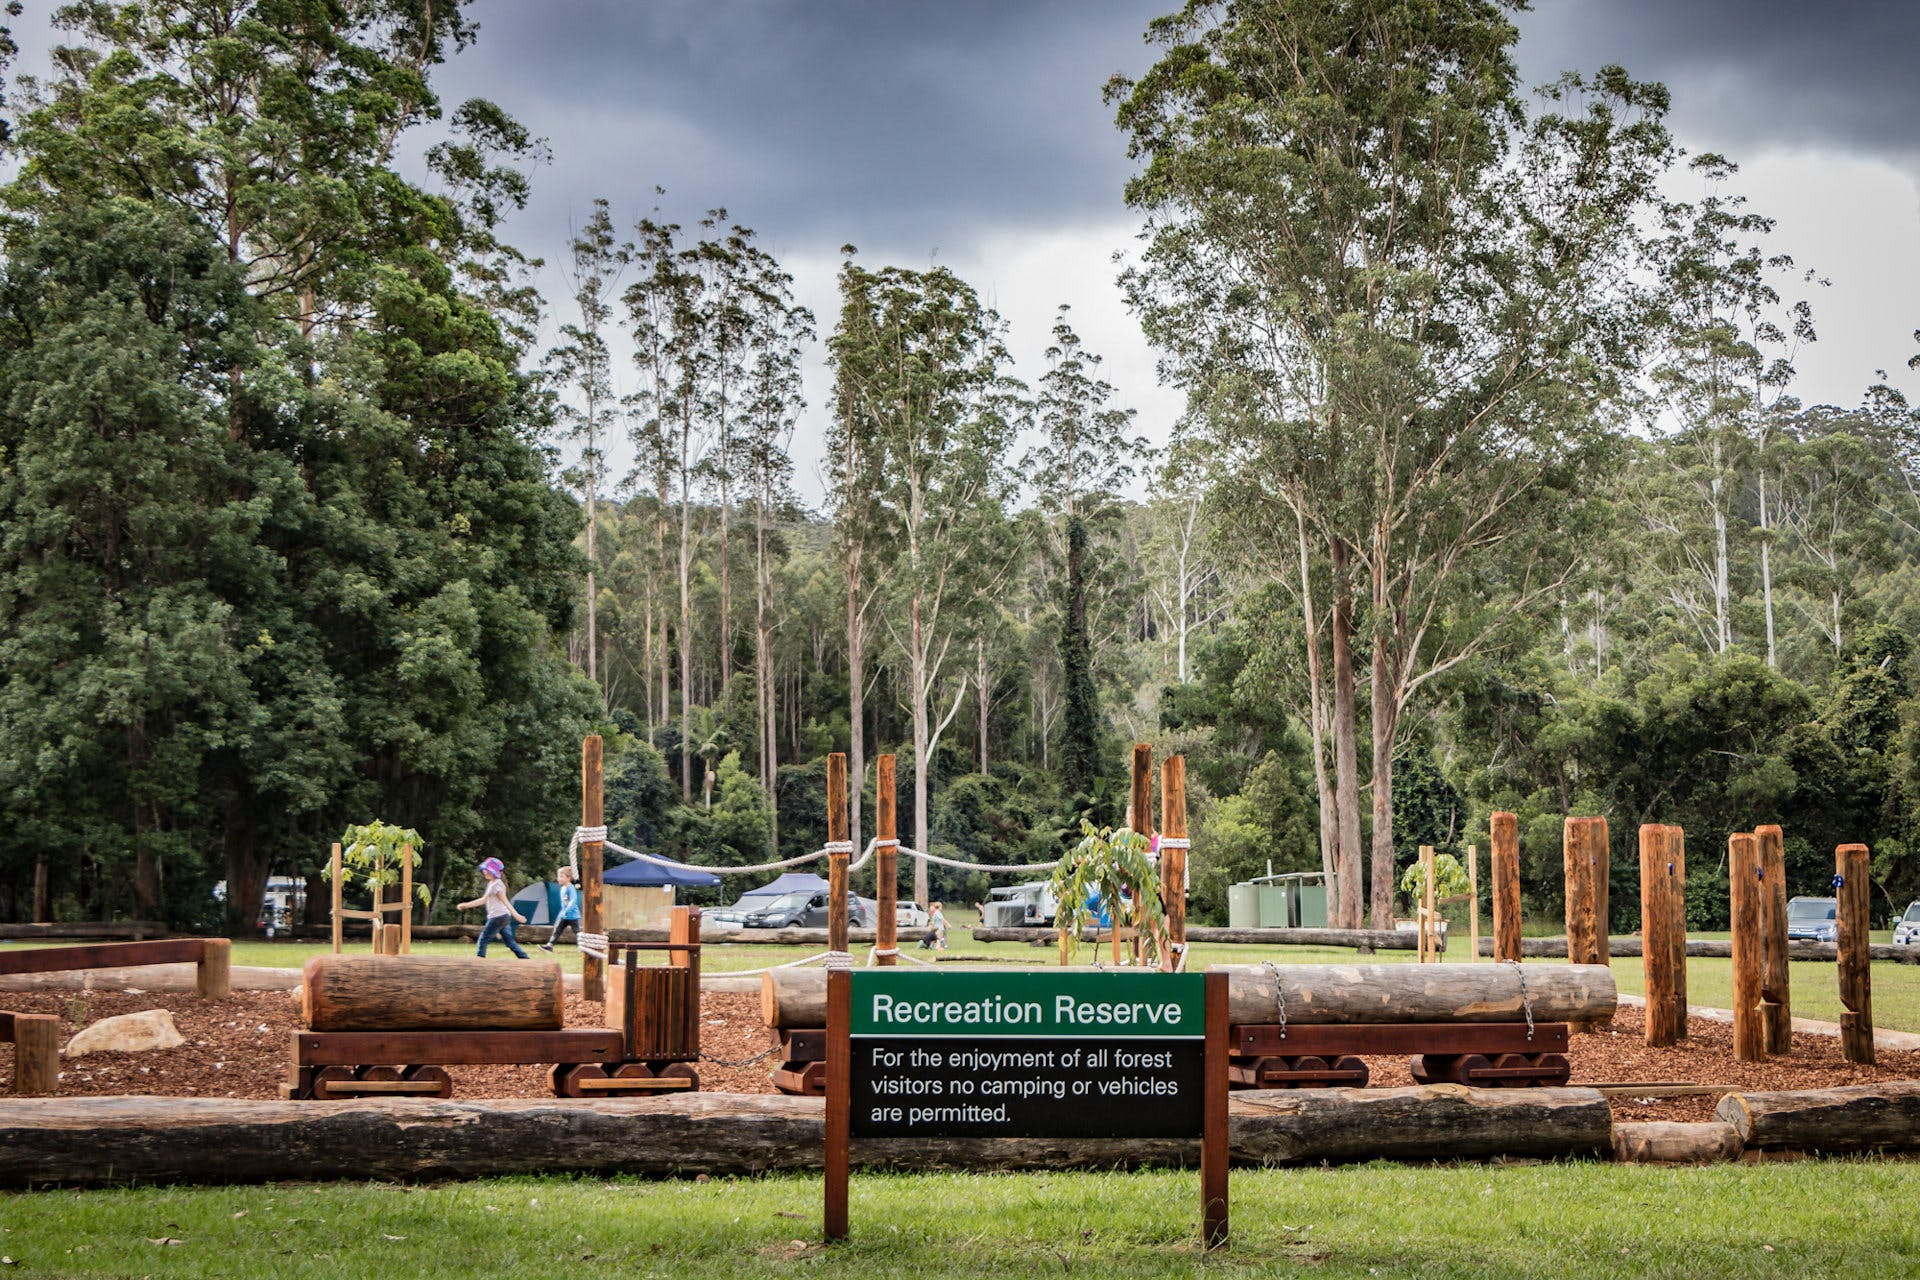 Swans Crossing is NSW site 381 in Camps10 or find it on the Camps Australia Wide App, it has a brand new playground for the family to enjoy